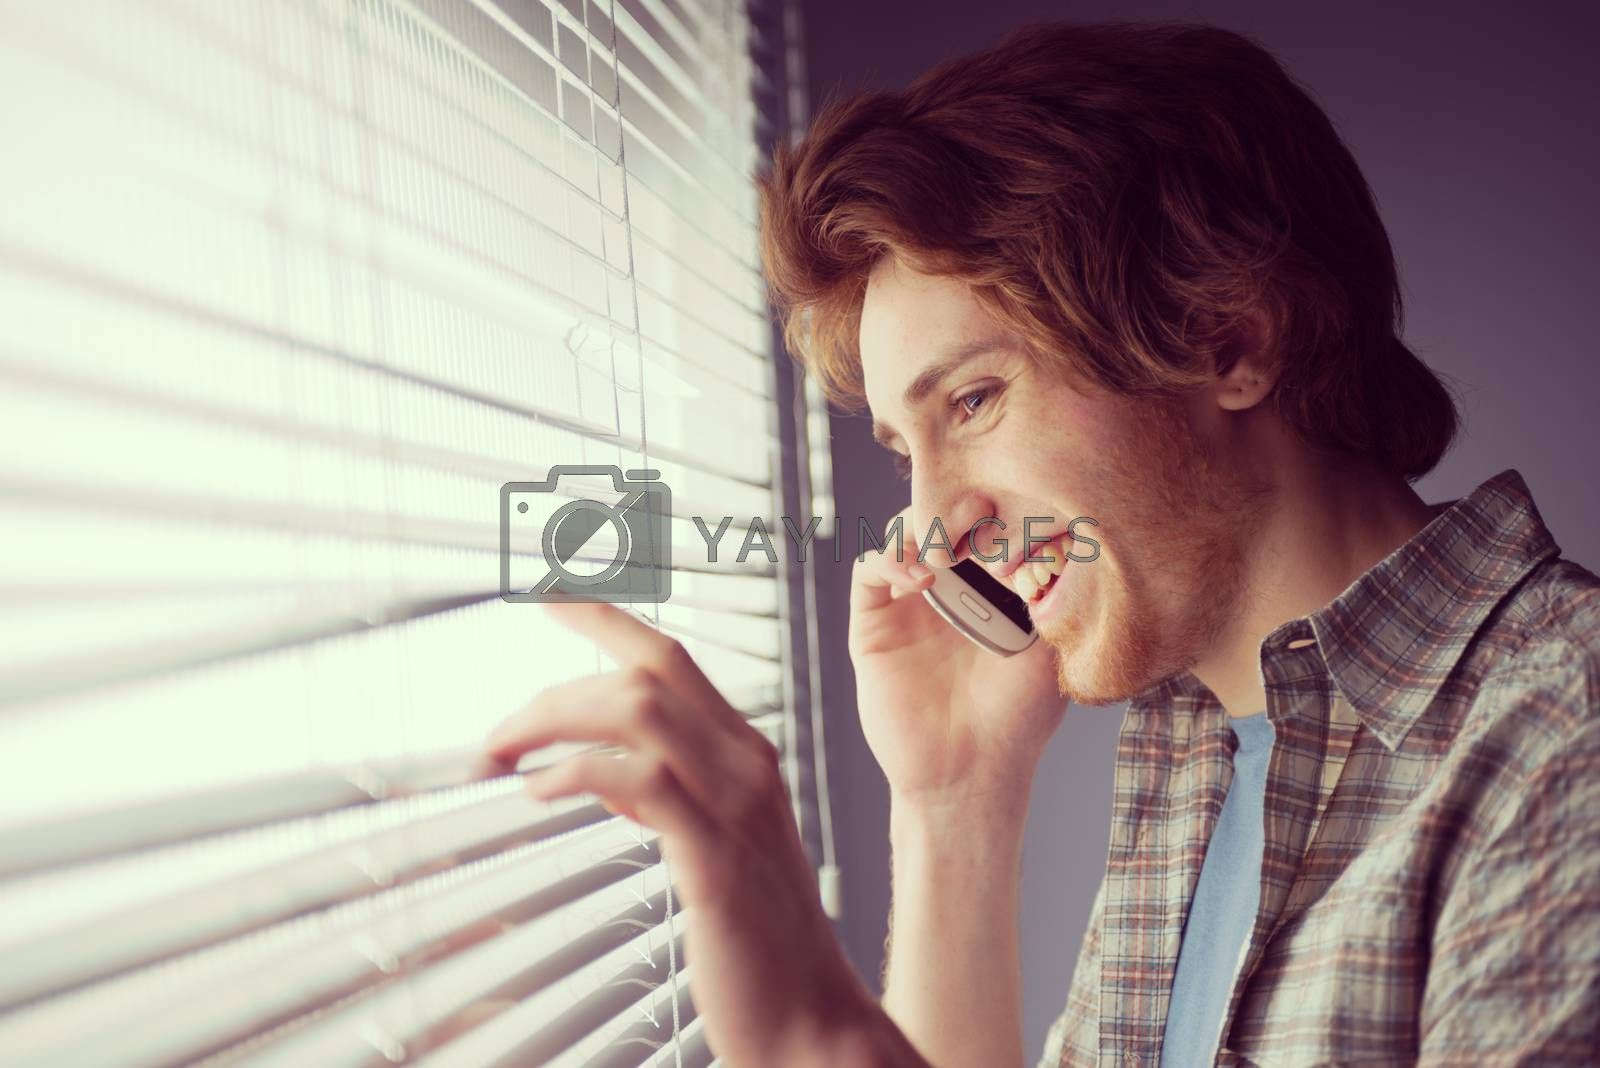 Young man smiling and talking on the phone in front of a window.